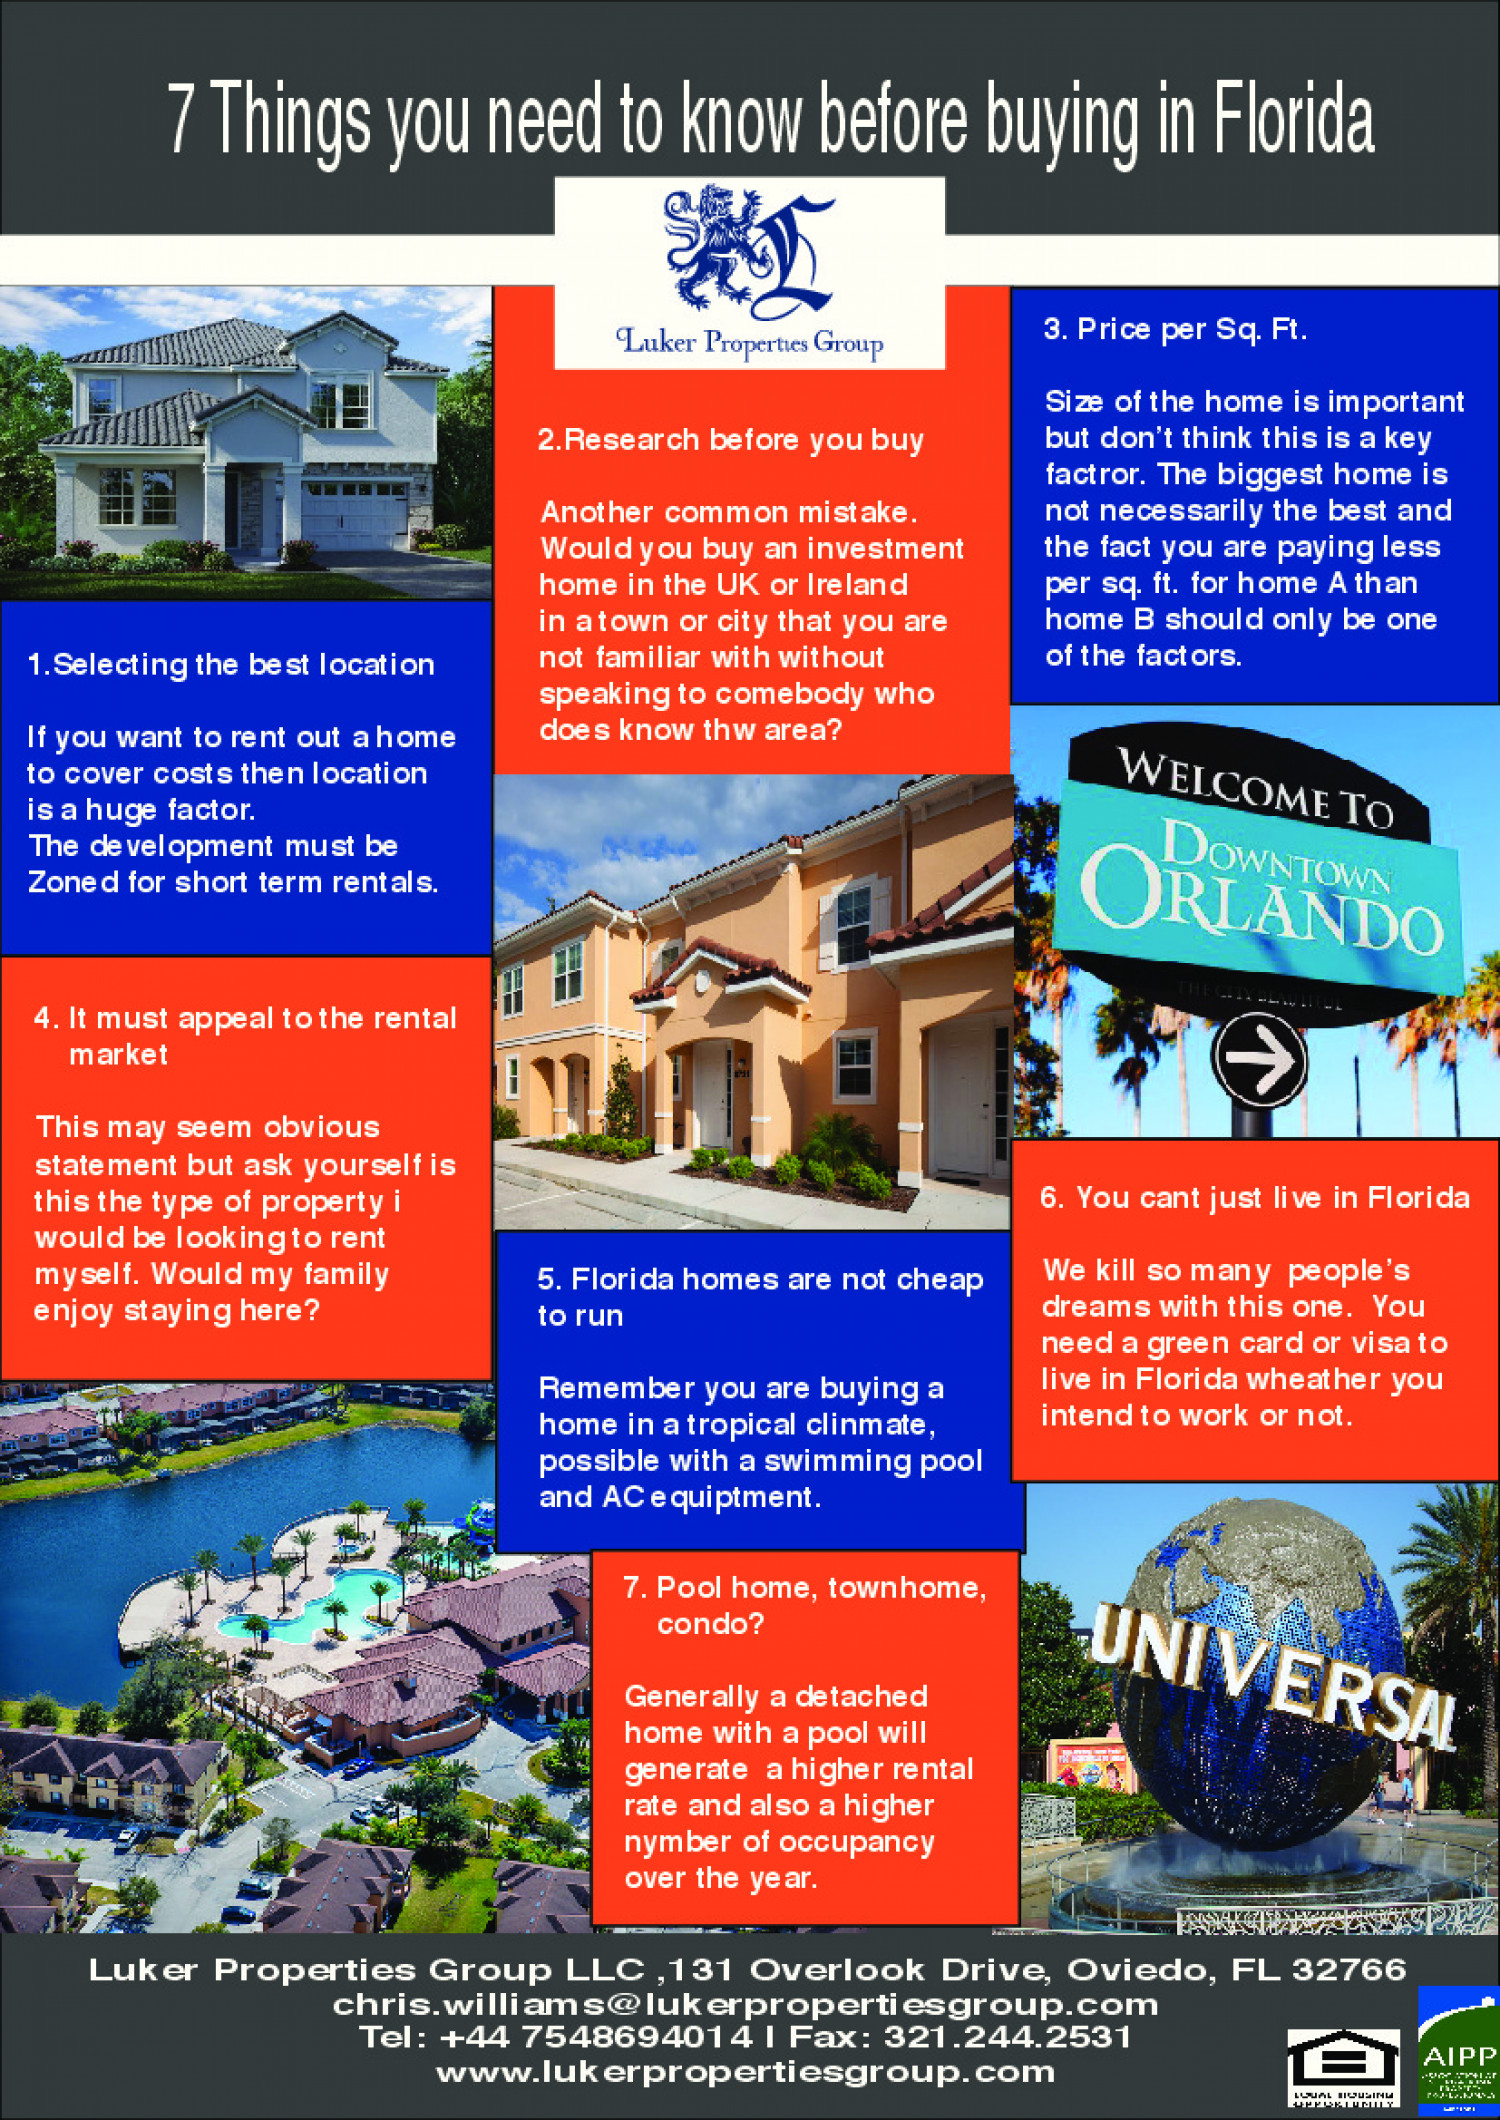 7 things about buying in Florida  Infographic